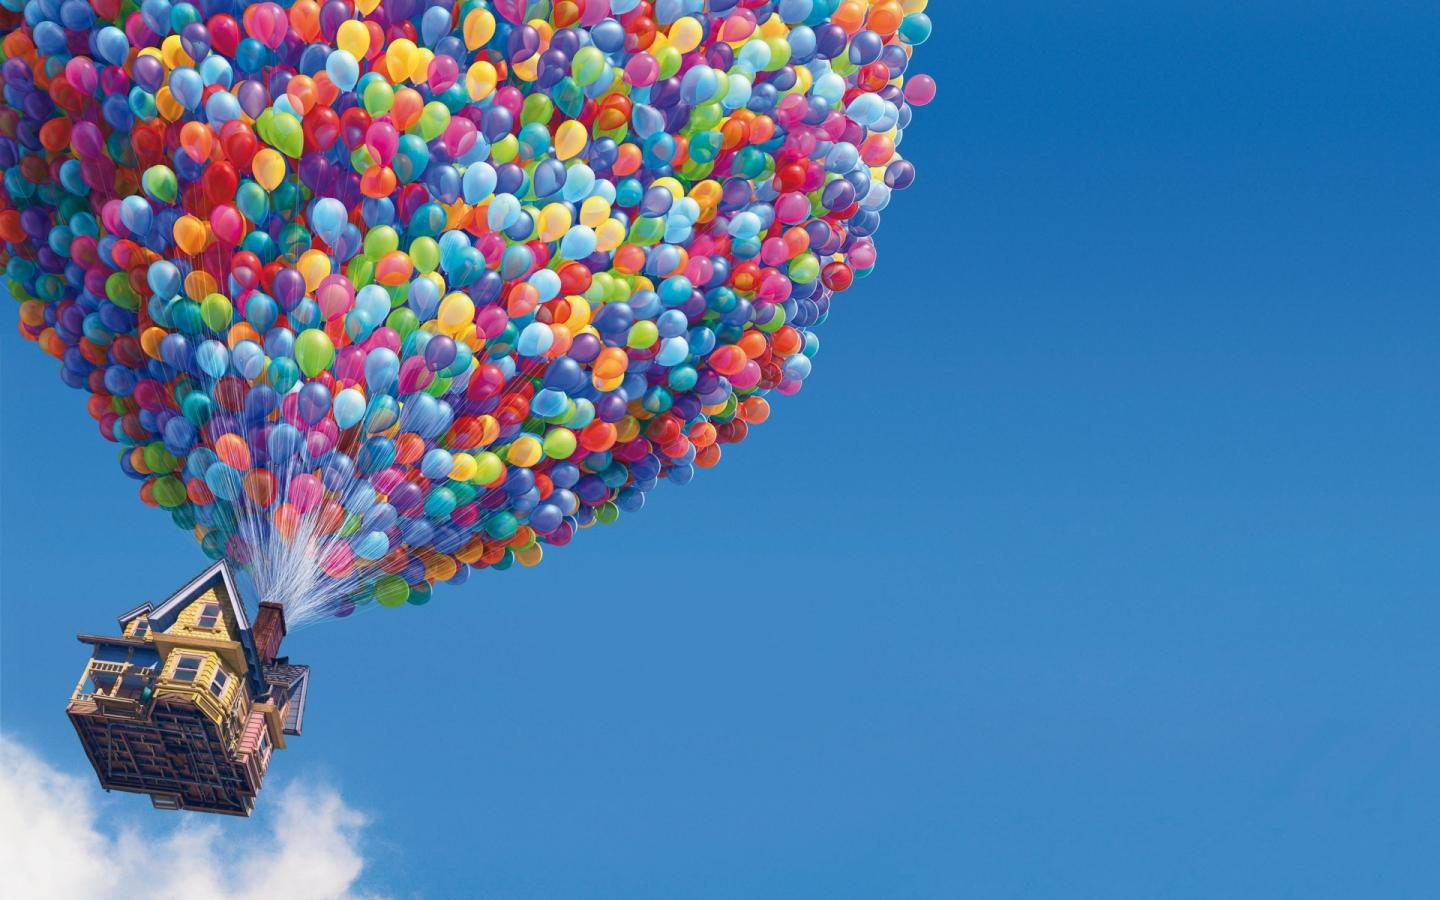 Up Pixar Animation HD Wallpapers Download Wallpapers in HD 1440x900